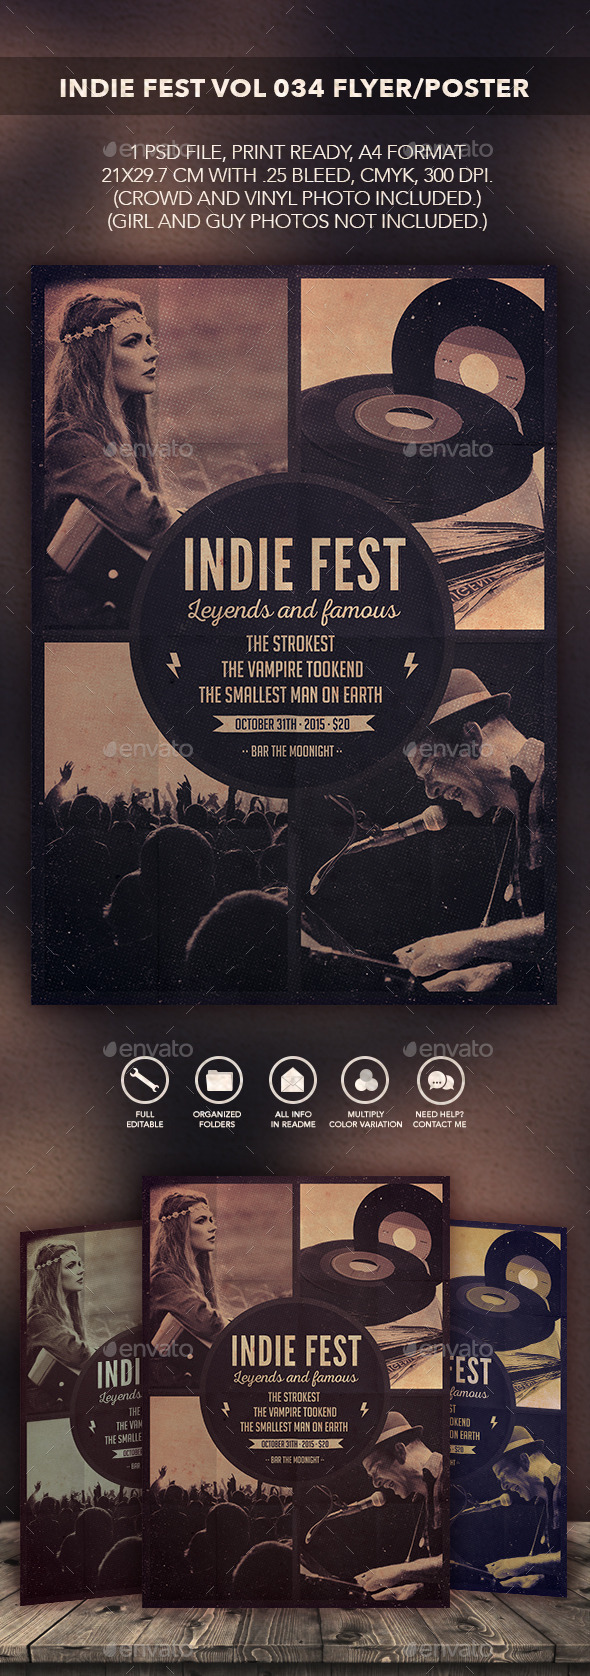 GraphicRiver Indie Fest Vol 04 Flyer Poster 10564107